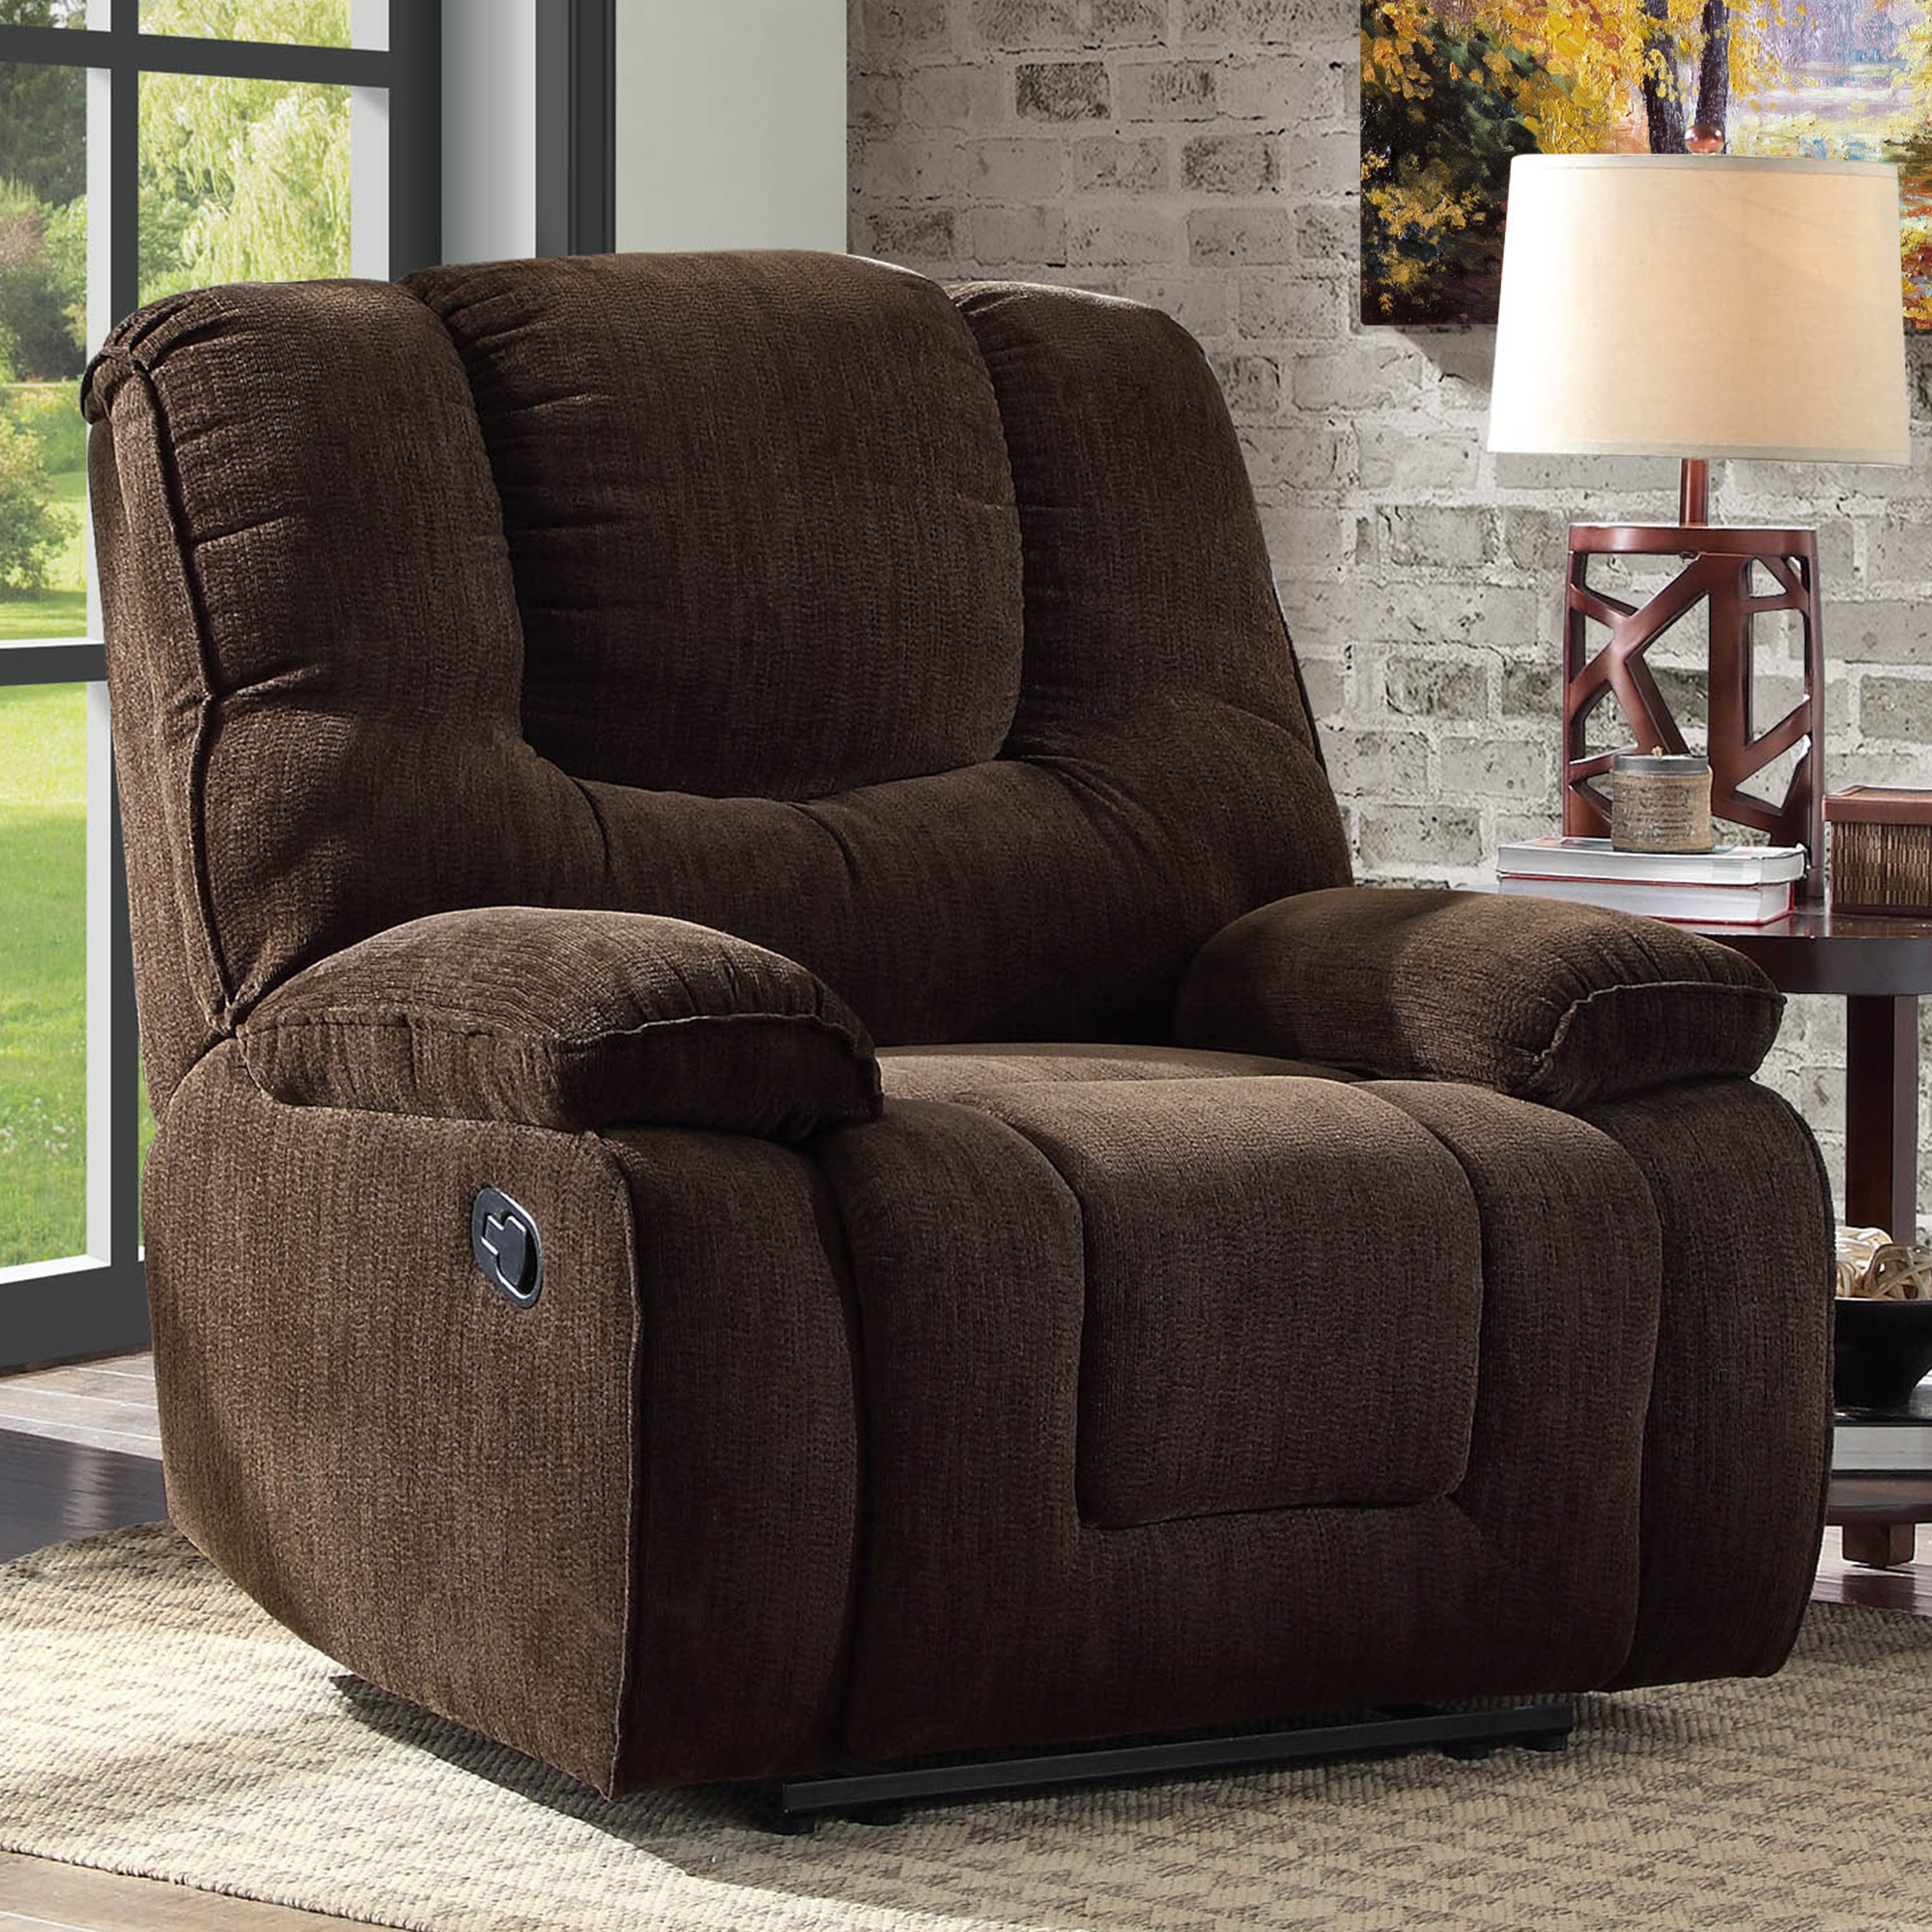 Better Homes and Gardens Big & Tall Recliner with In-Arm Storage and USB, Multiple Colors